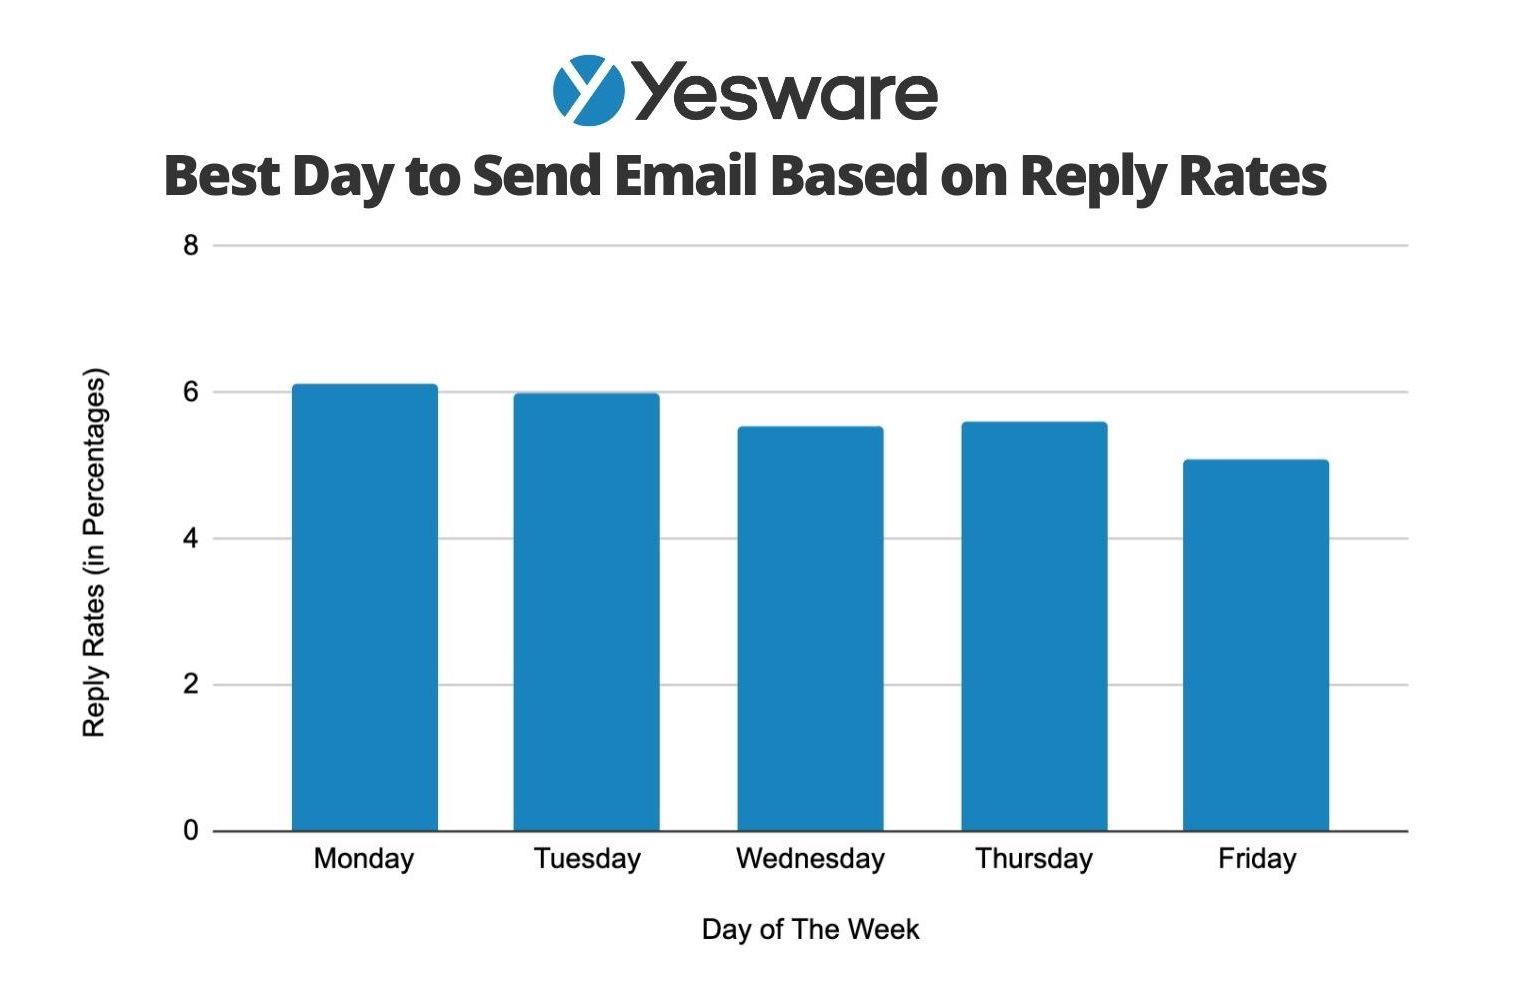 Best Day to Send Email Based on Reply Rates